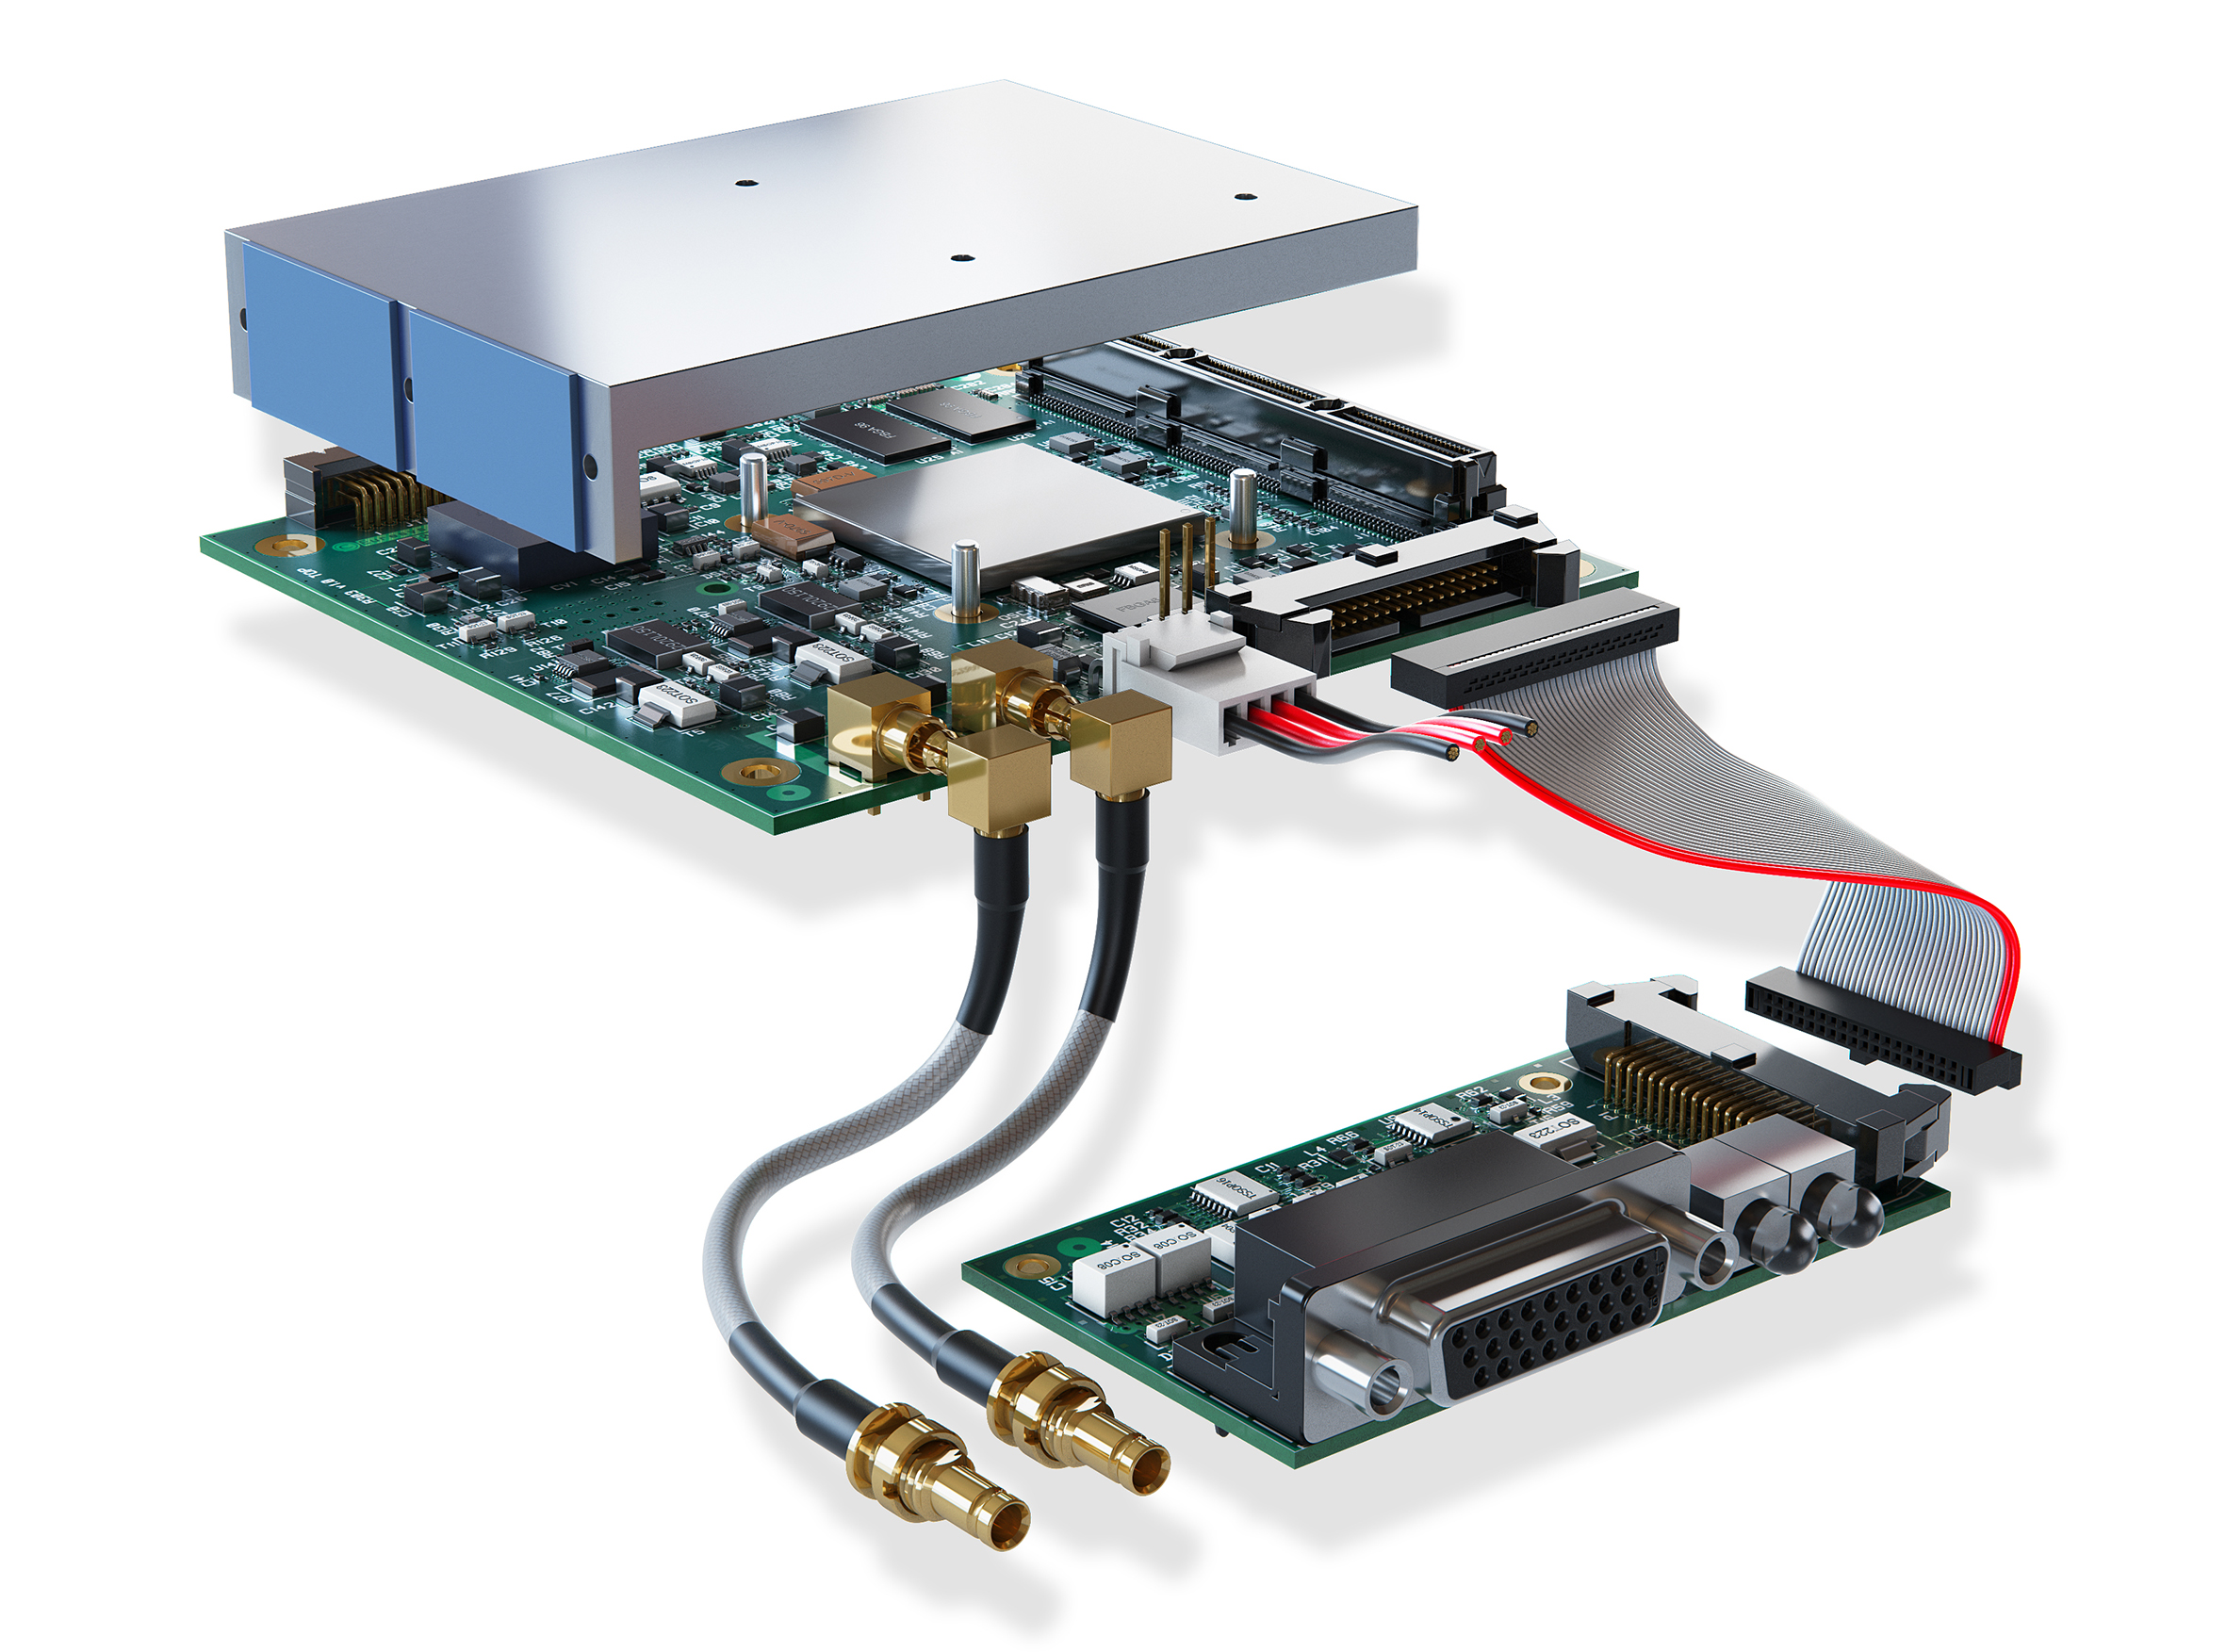 ADL Embedded Solutions Inc. Announces ADLVIS-1660 CoaXPress Solution